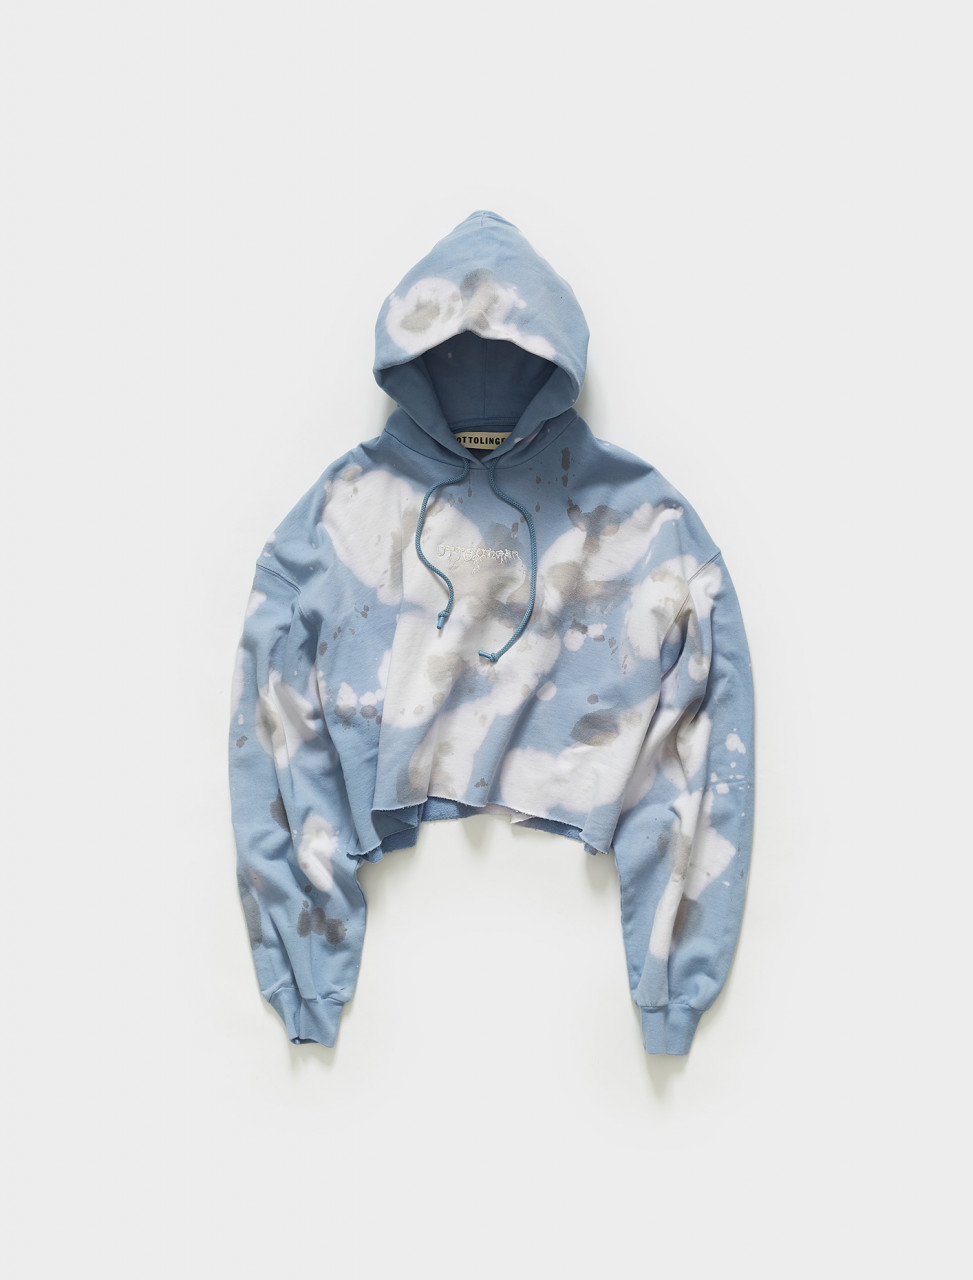 SS21SW03BC OTTOLINGER OTTO HOODIE CROPPED IN BLUE CLOUD